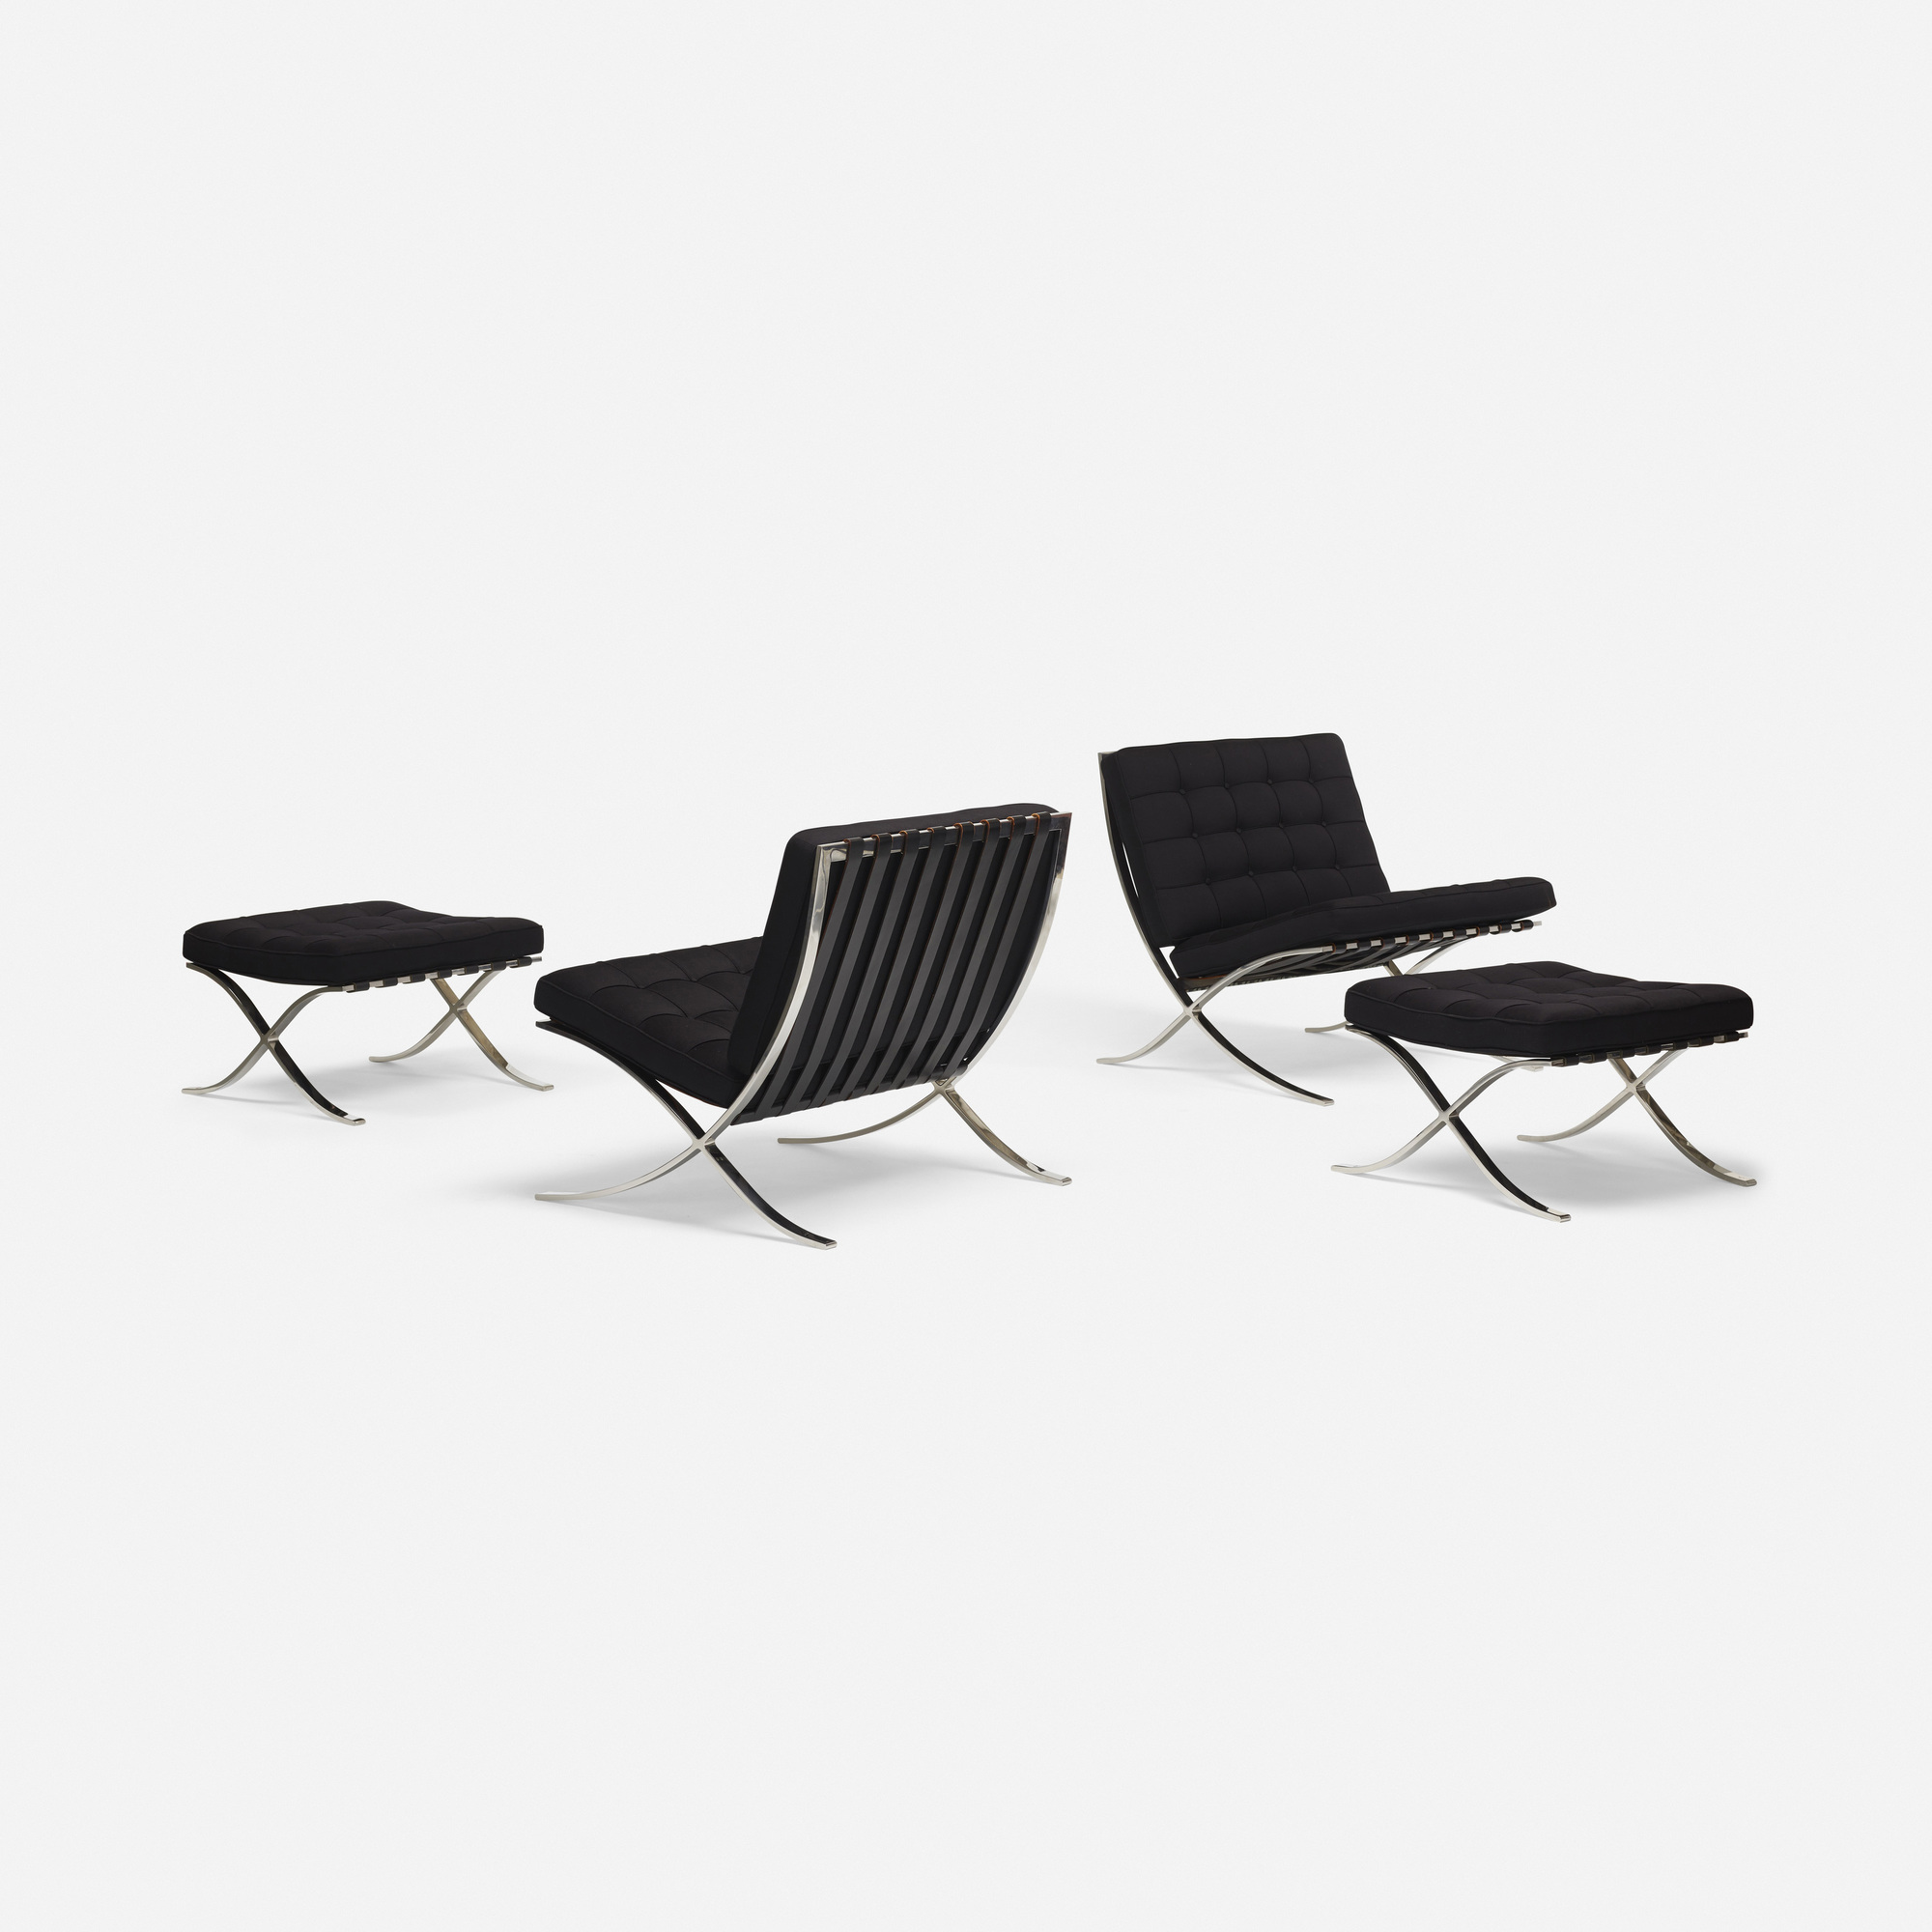 150 Ludwig Mies van der Rohe pair of Barcelona chairs and